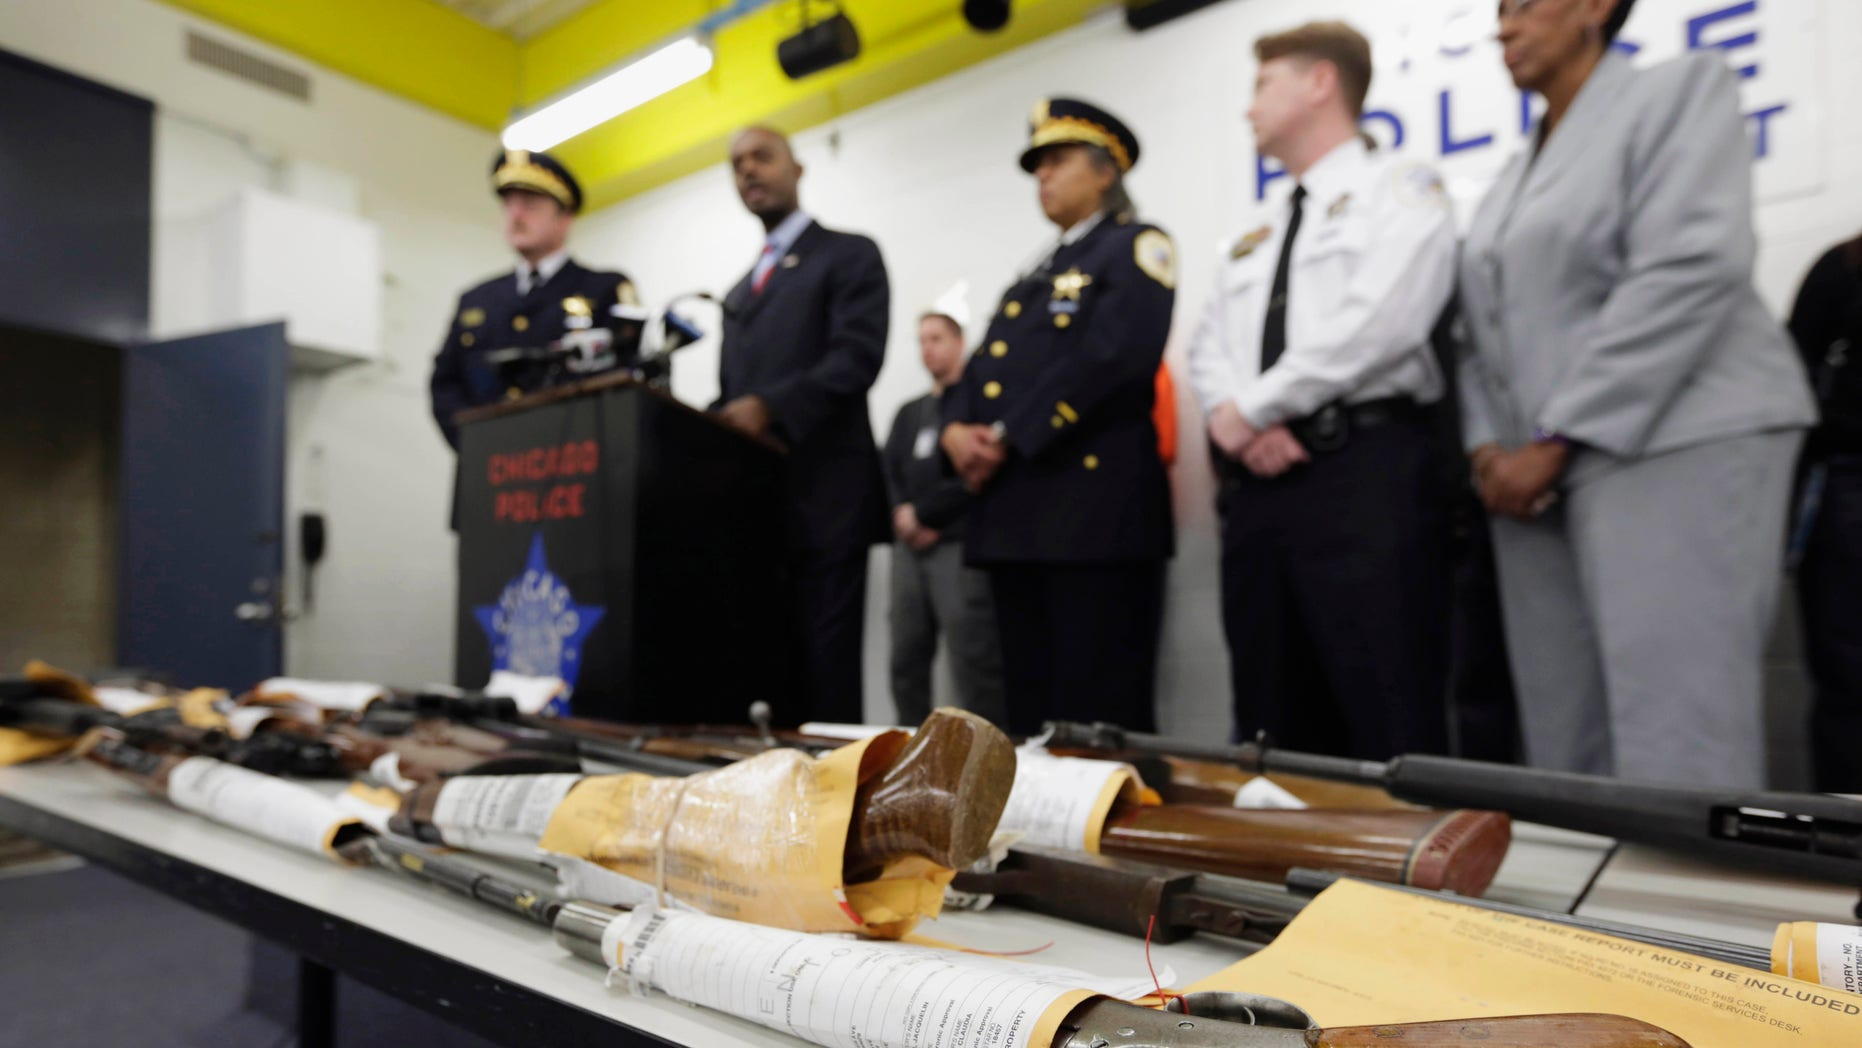 FILE - In this Jan. 28, 2013, file photo, Chicago Police First Deputy Superintendent Alfonsa Wysinger, second from left, speaks at a news conference in Chicago with a display of recently seized guns, part of the 574 that had been seized in the city since Jan. 1. The mounting homicide toll in President Barack Obamas hometown has giving ammunition to both sides in the nations debate about gun rights and safety. On Monday, Jan. 6, 2014, a federal judge in Chicago potentially opened a new market to gun dealers after ruling as unconstitutional Chicago ordinances that aim to reduce gun violence by banning their sale within the city's limits. (AP Photo/M. Spencer Green, File)